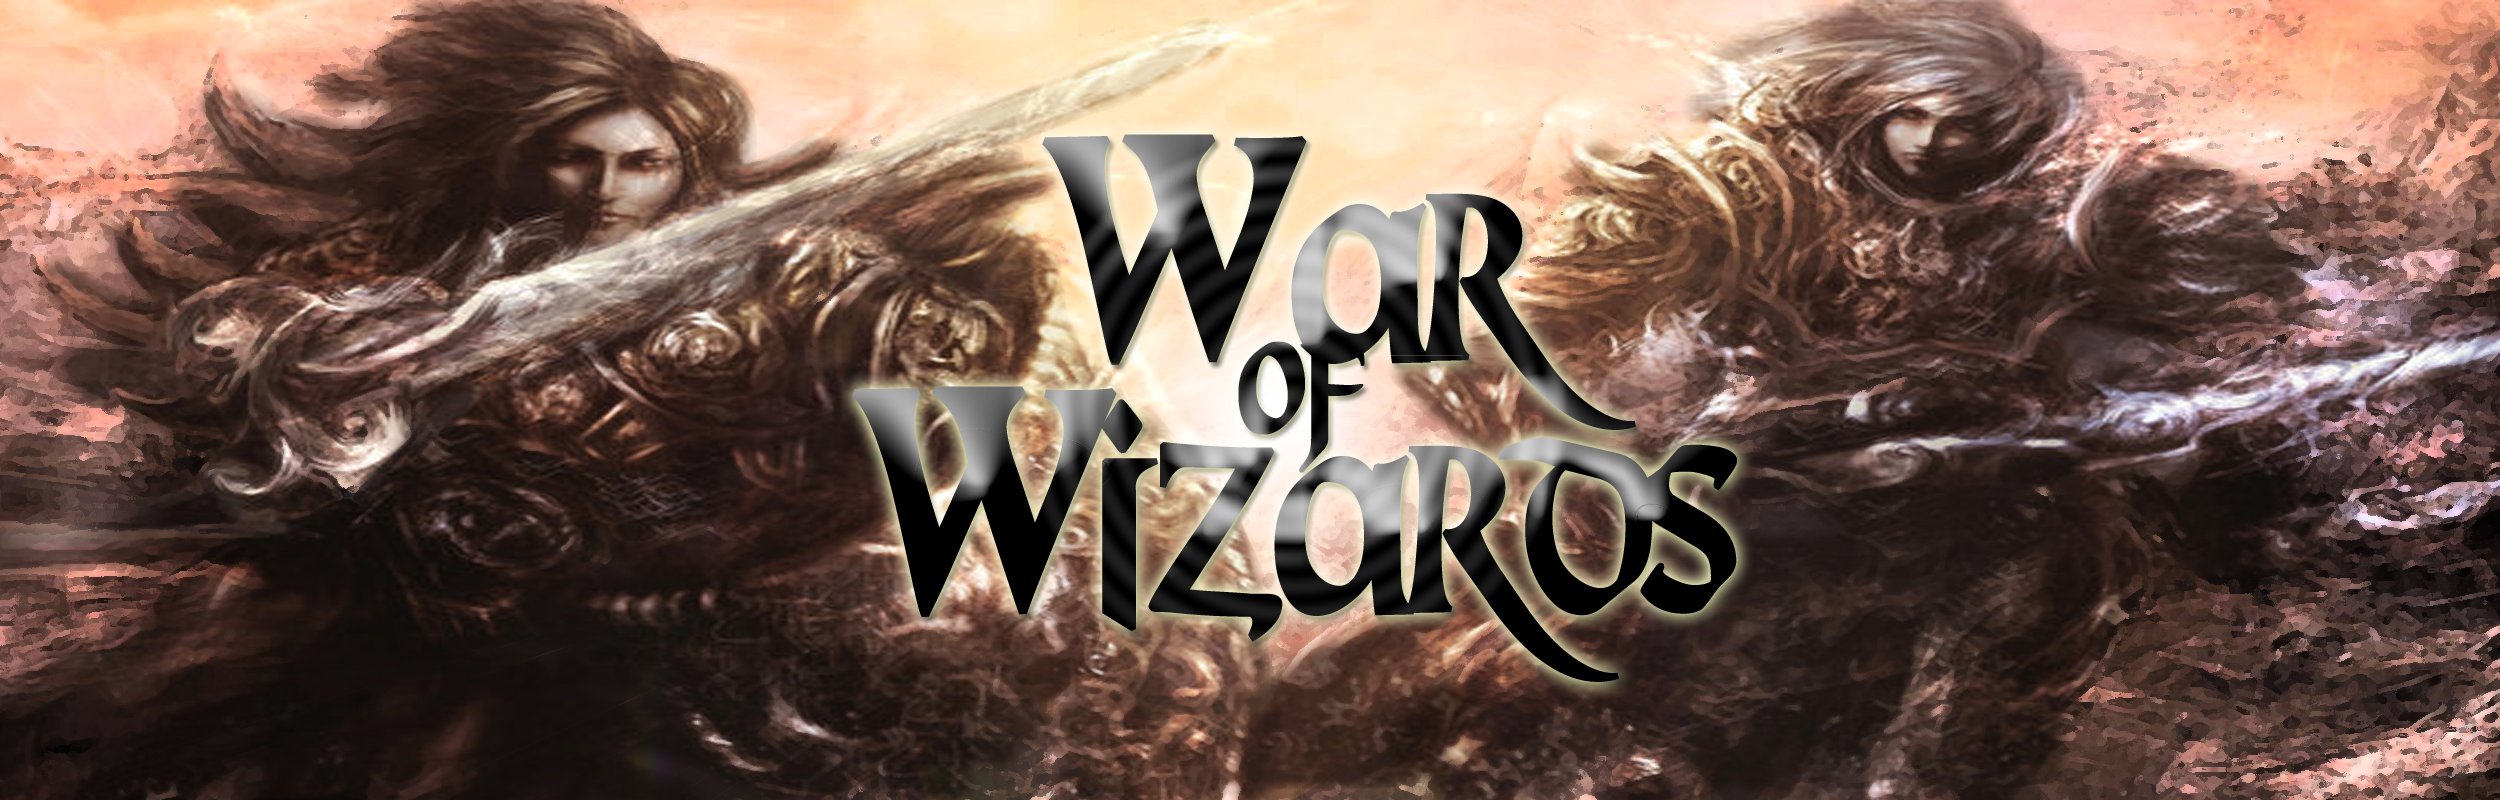 Banner Ad Design by Lara Puno - Entry No. 34 in the Banner Ad Design Contest Banner Ad Design - War of Wizards (fantasy game).